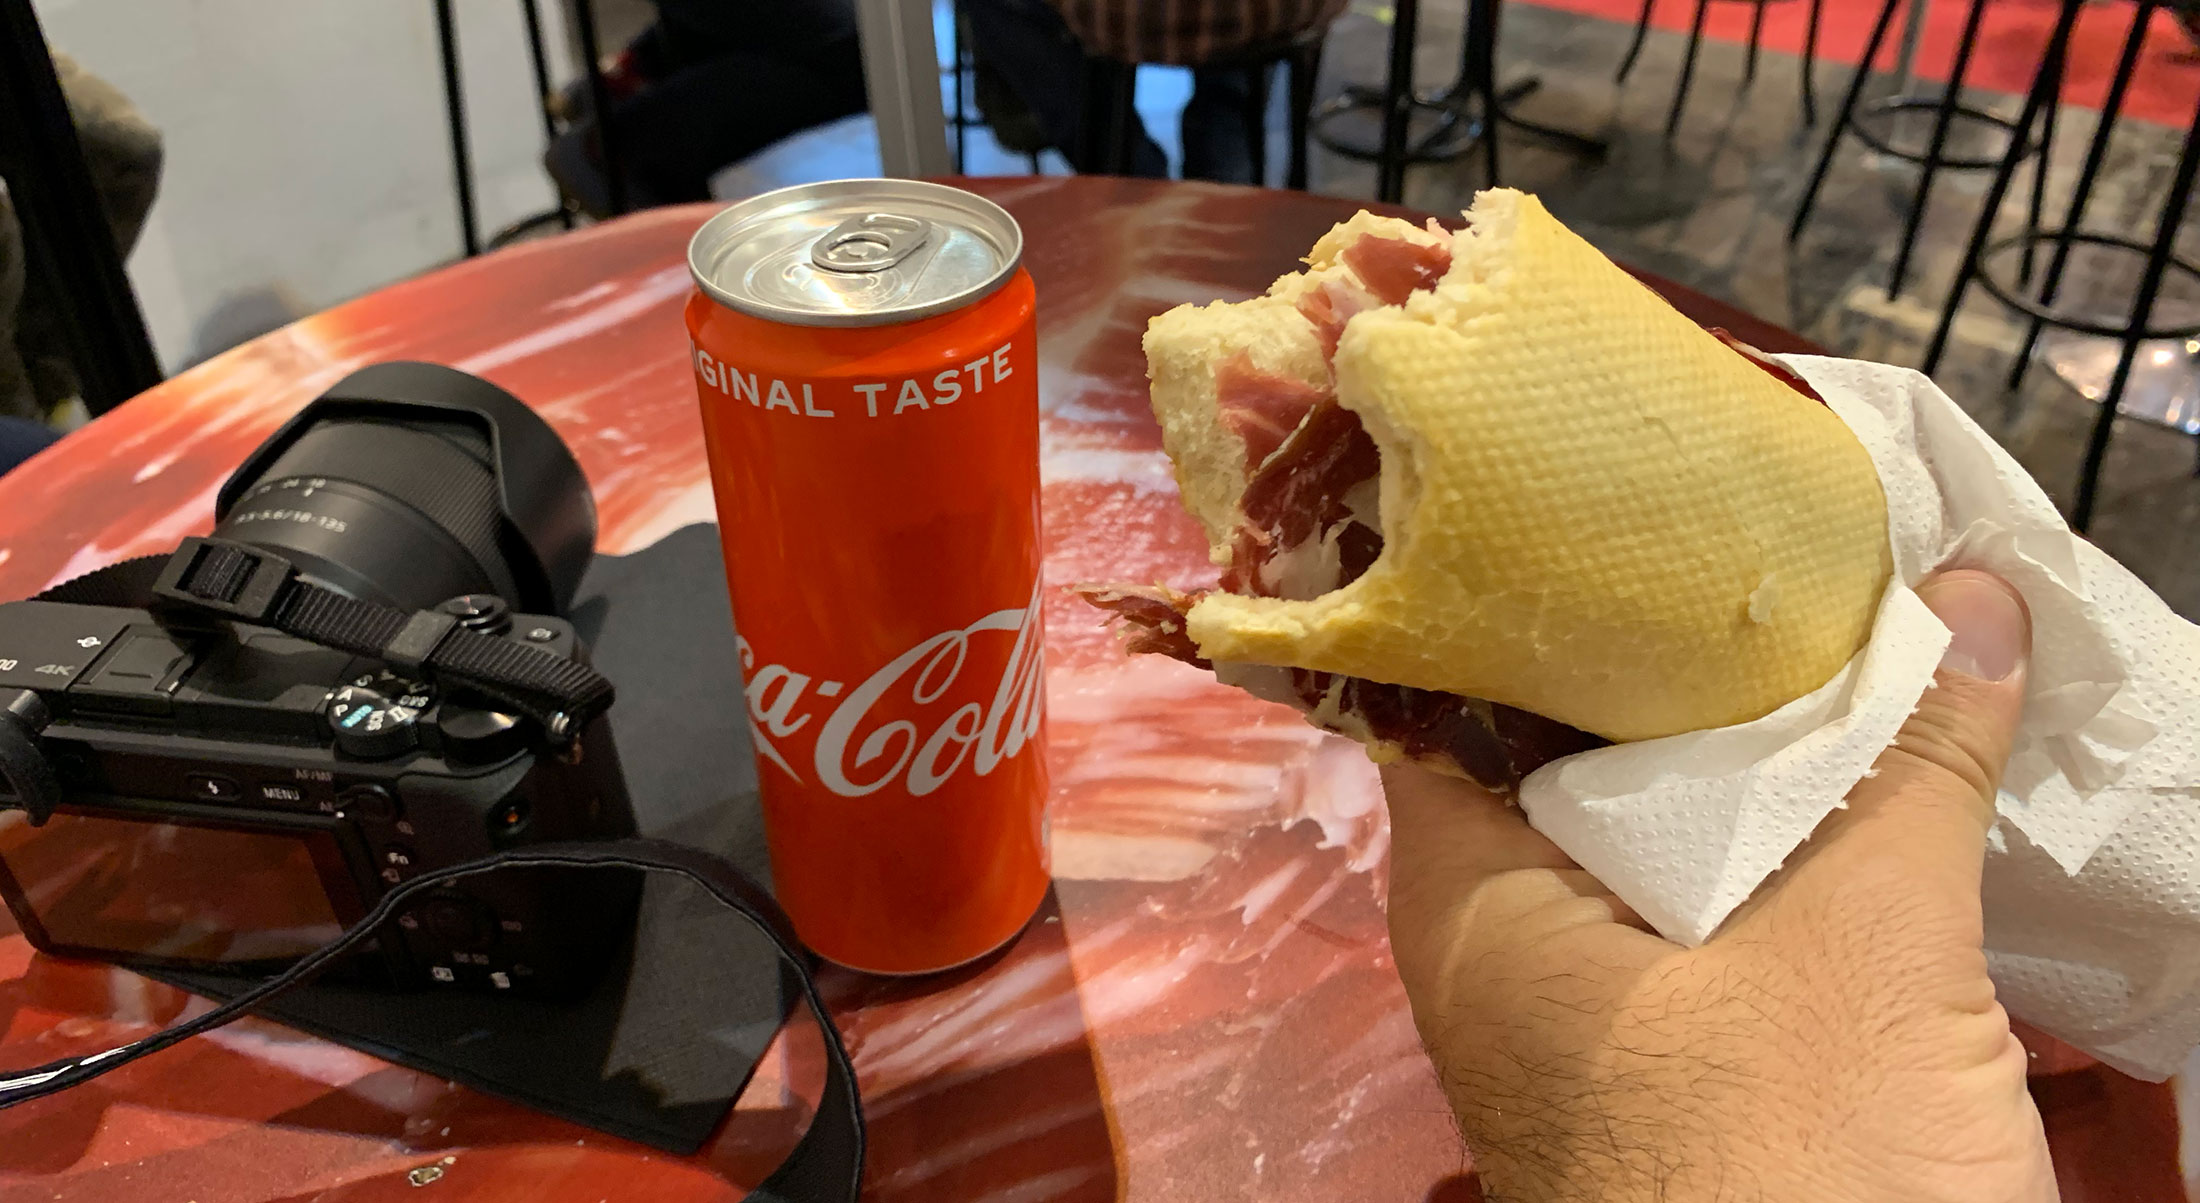 Did I mention how great this sandwich was? Prosciutto and bread - so simple yet so amazing. I had it both days for lunch LOL. 10E with drink IIRC. I've gone to EATALY here in LA trying to duplicate it…not quite the same, but will have to do until I go back.